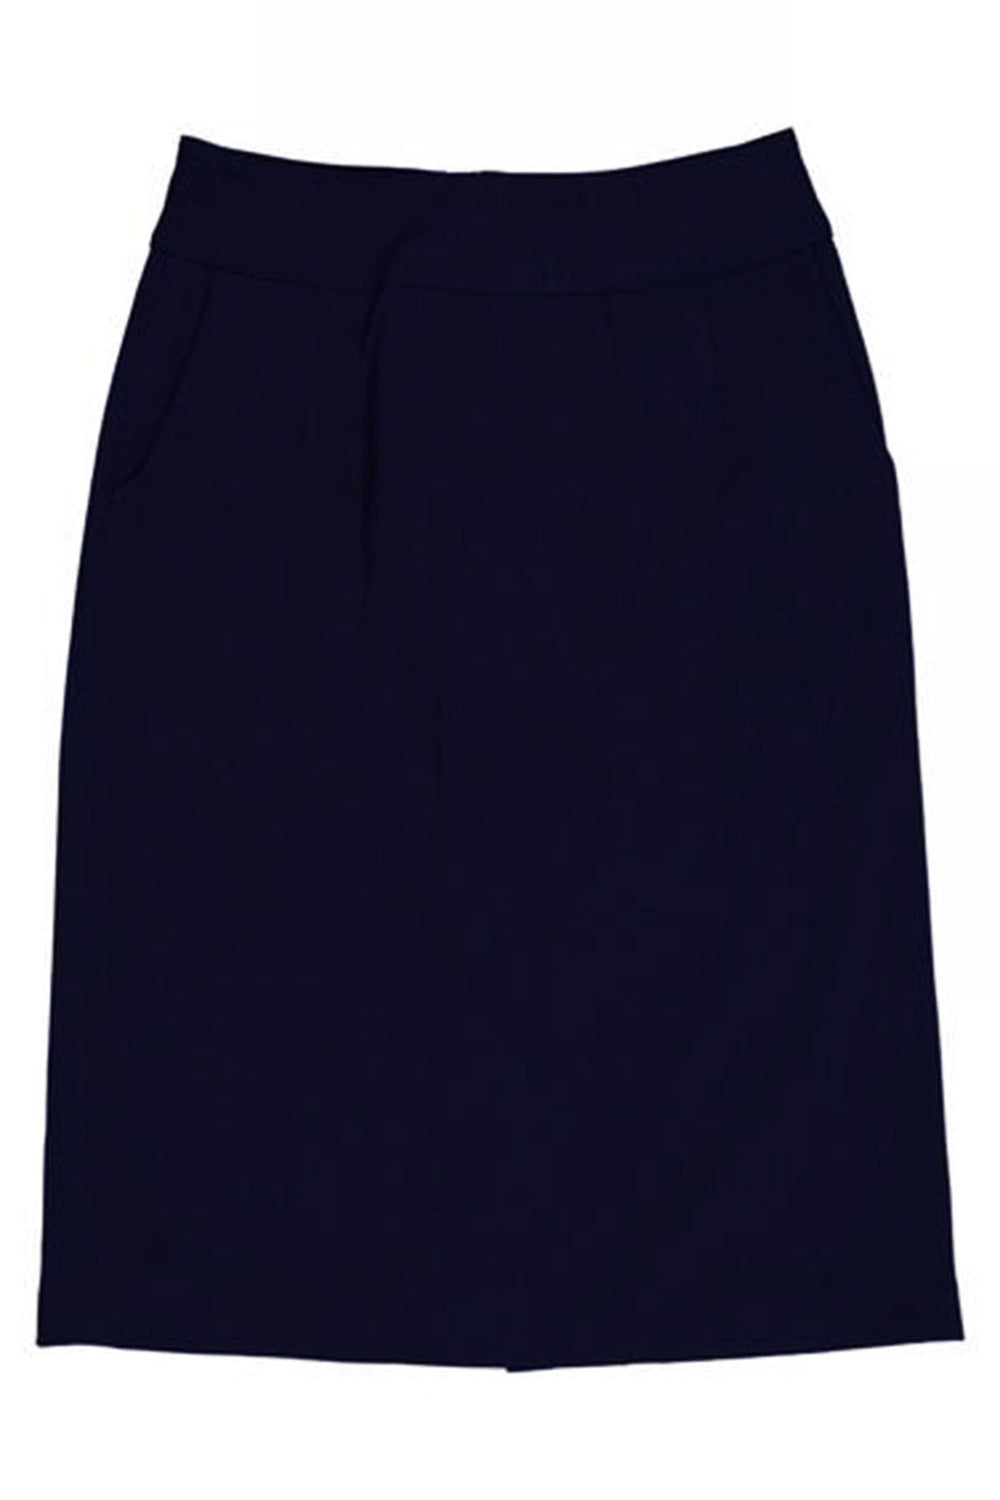 Siena Pocket Skirt